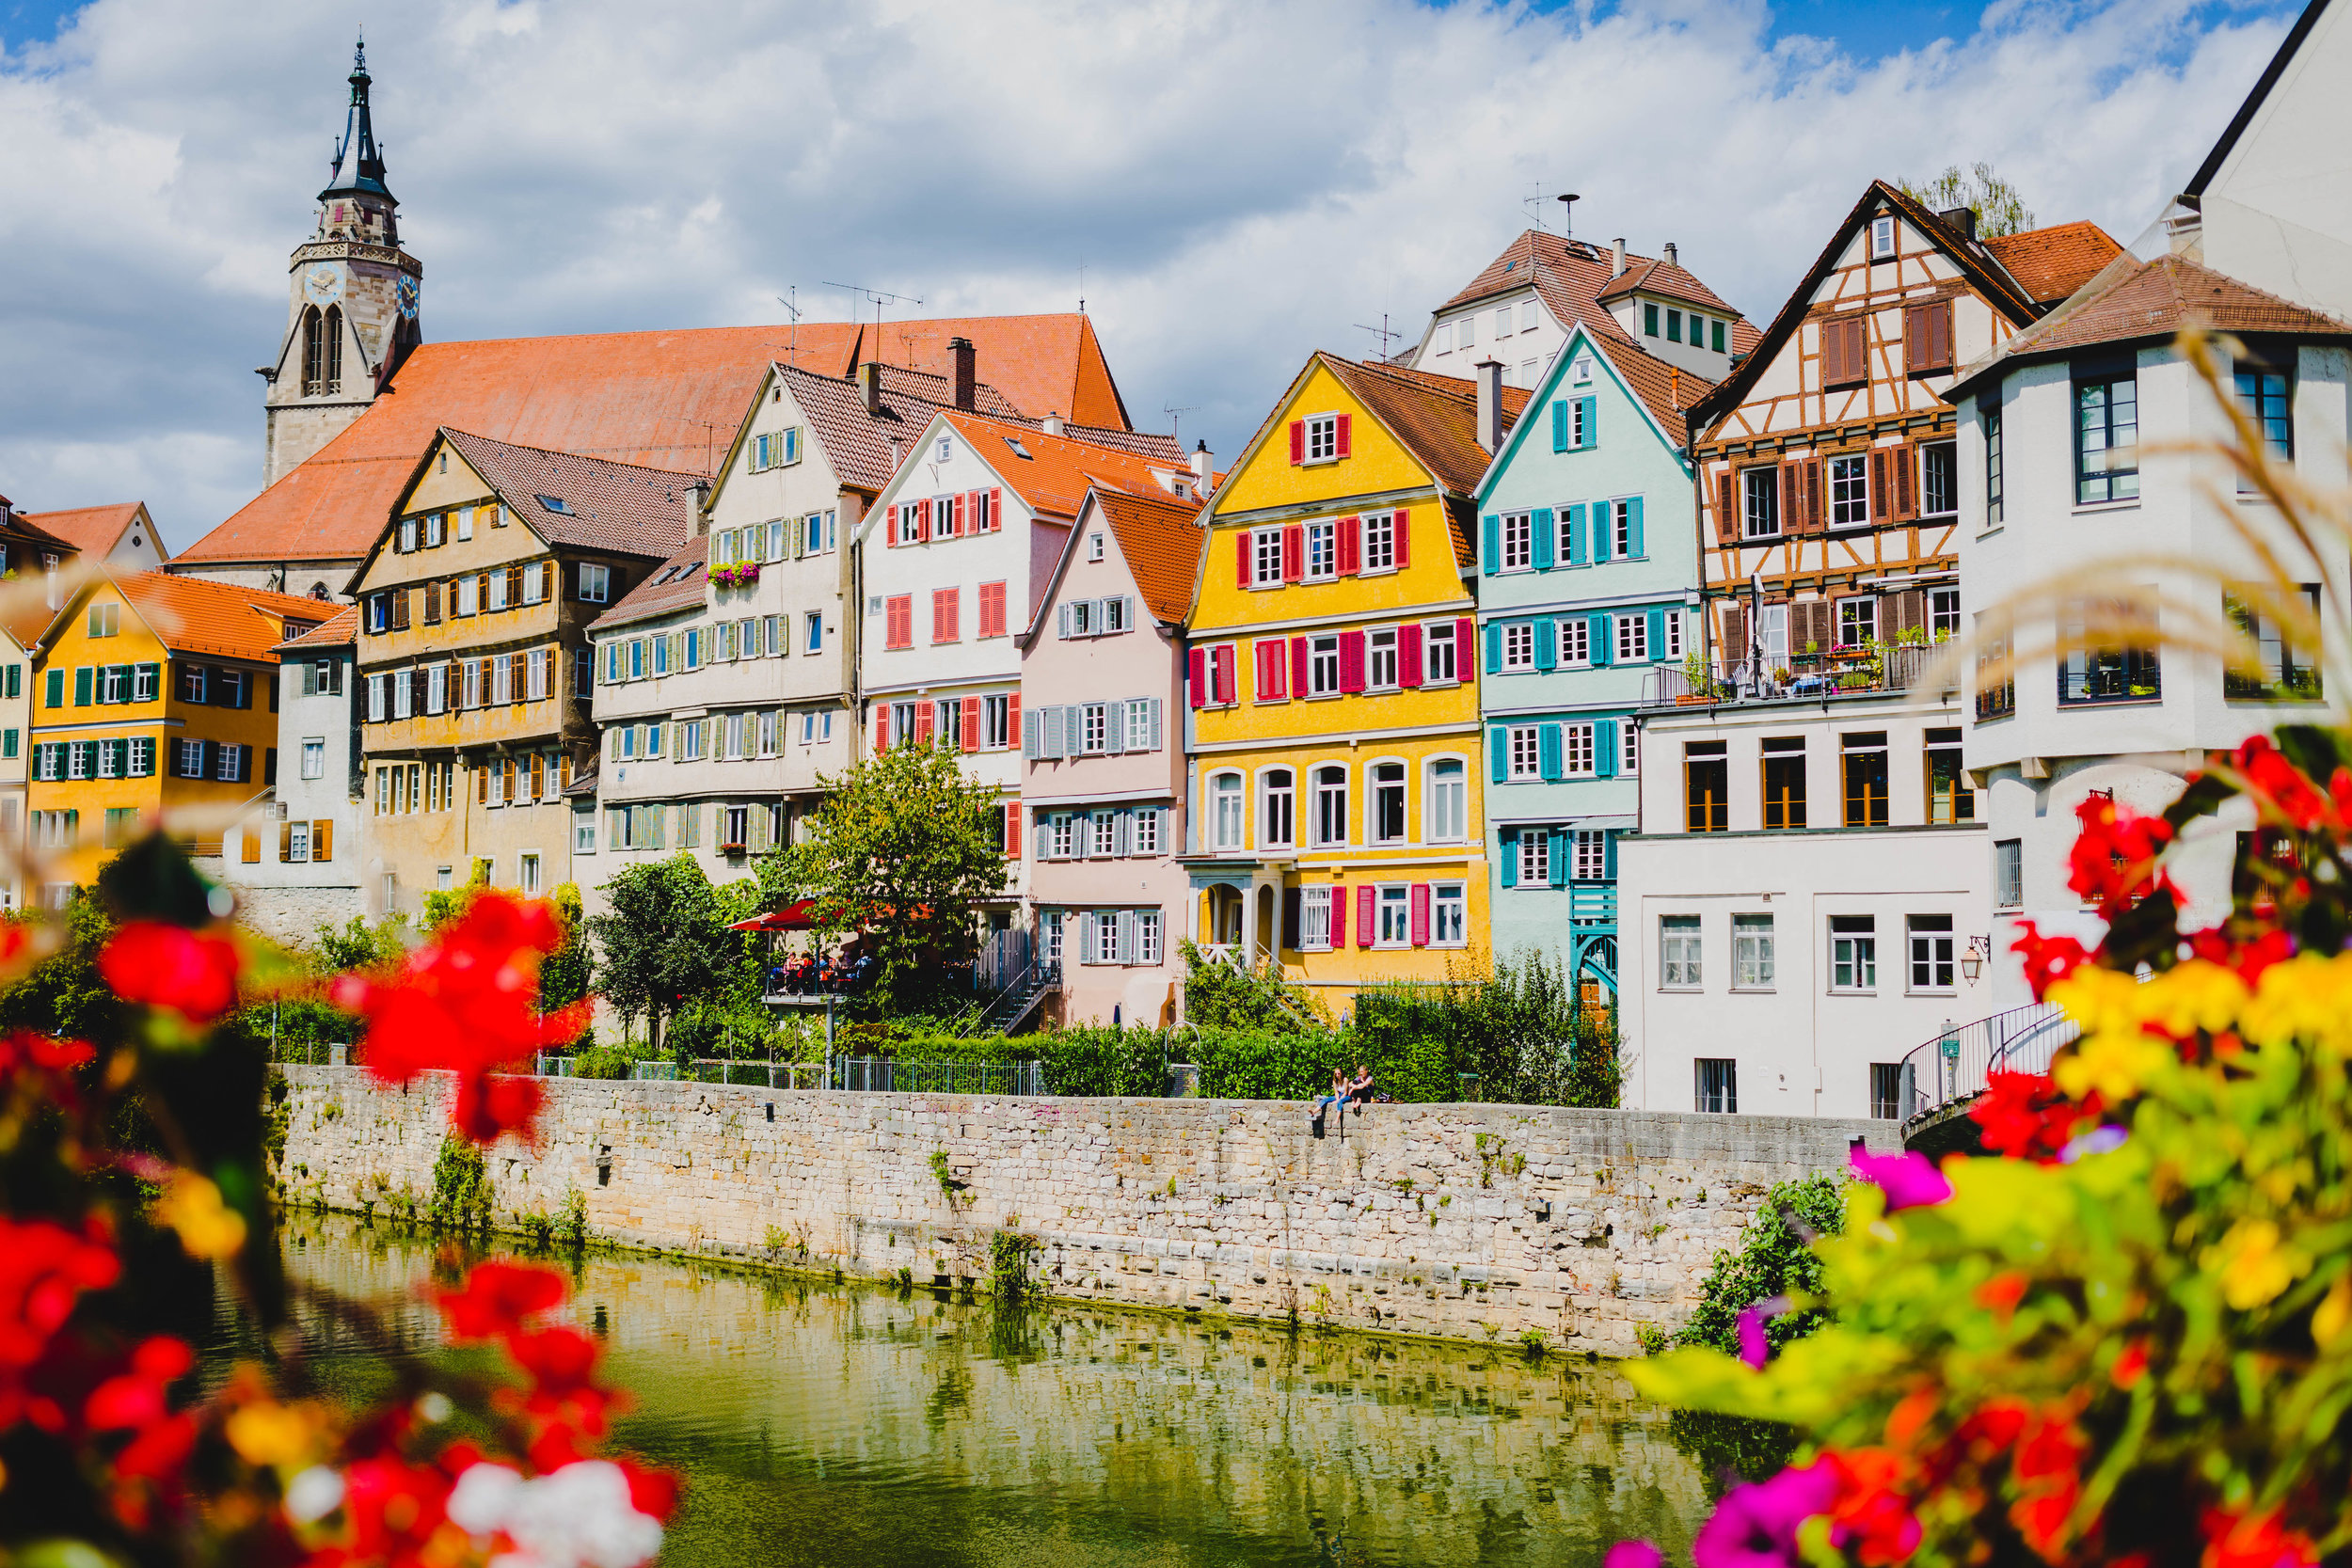 1. Neckar River - Colorful houses line the river in the alstadt where the charm begins!